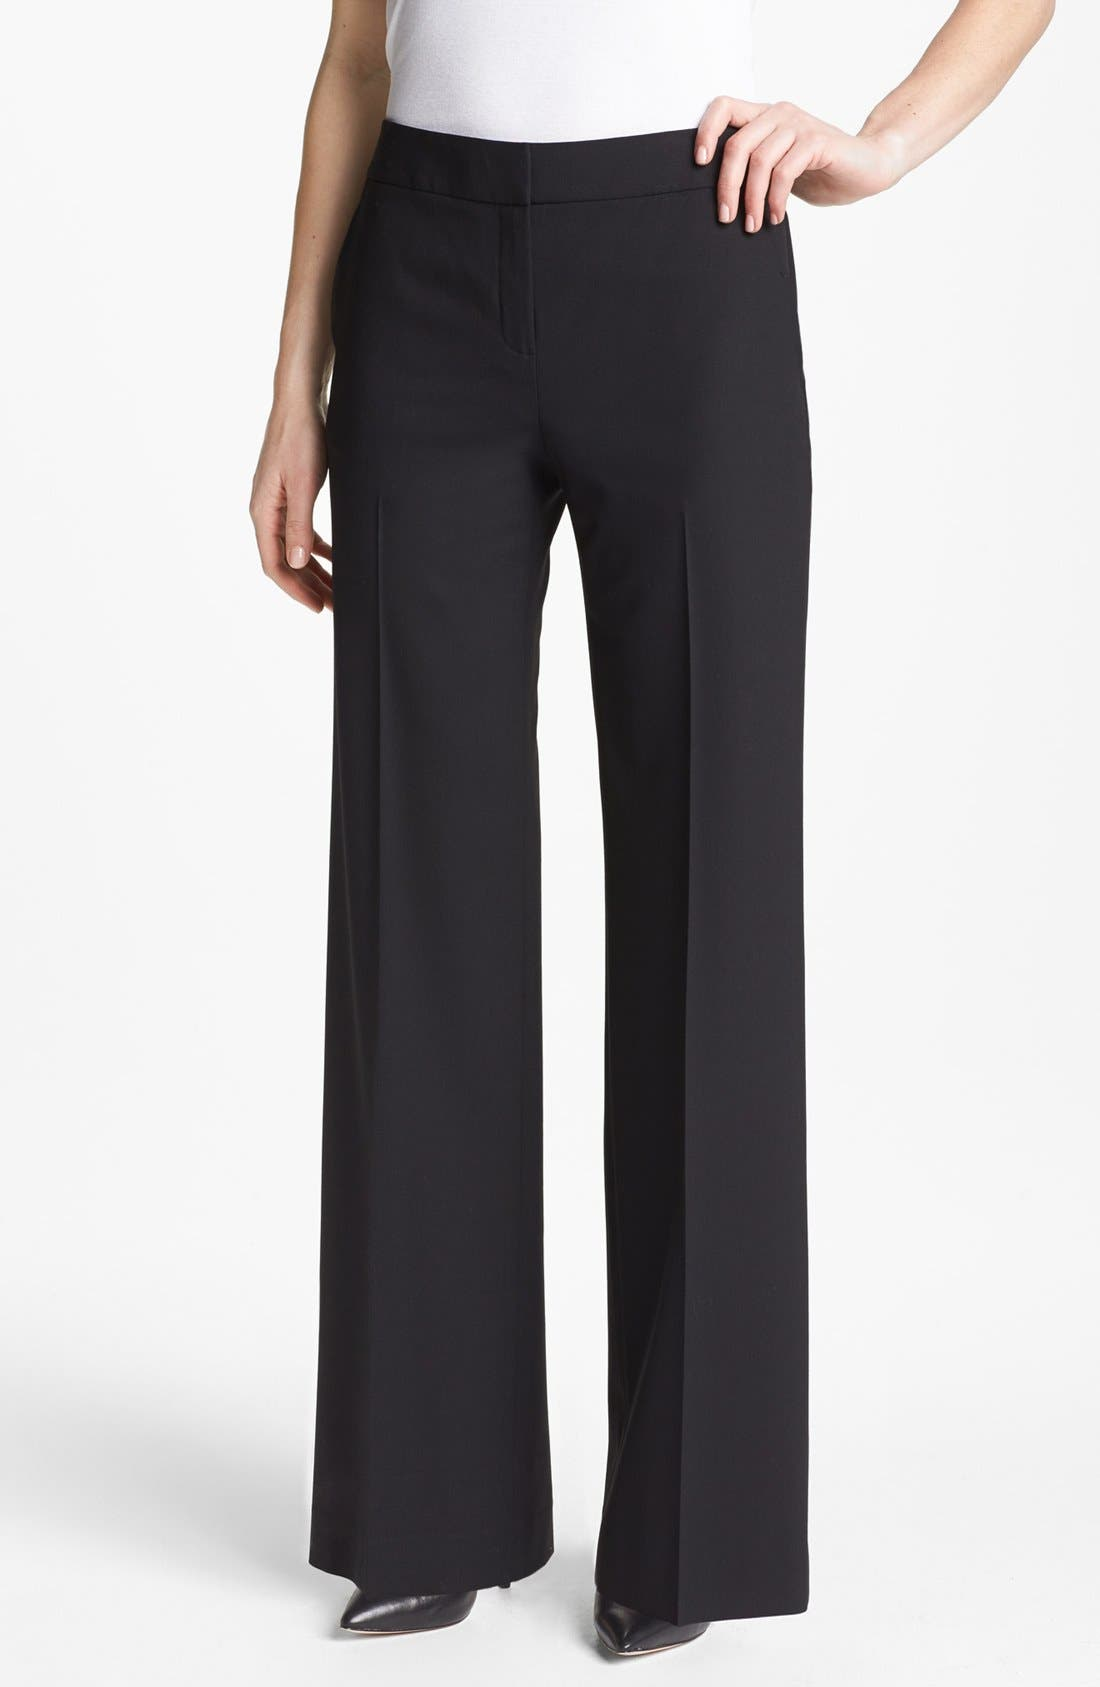 Main Image - Lafayette 148 New York 'Delancey' Stretch Wool Pants